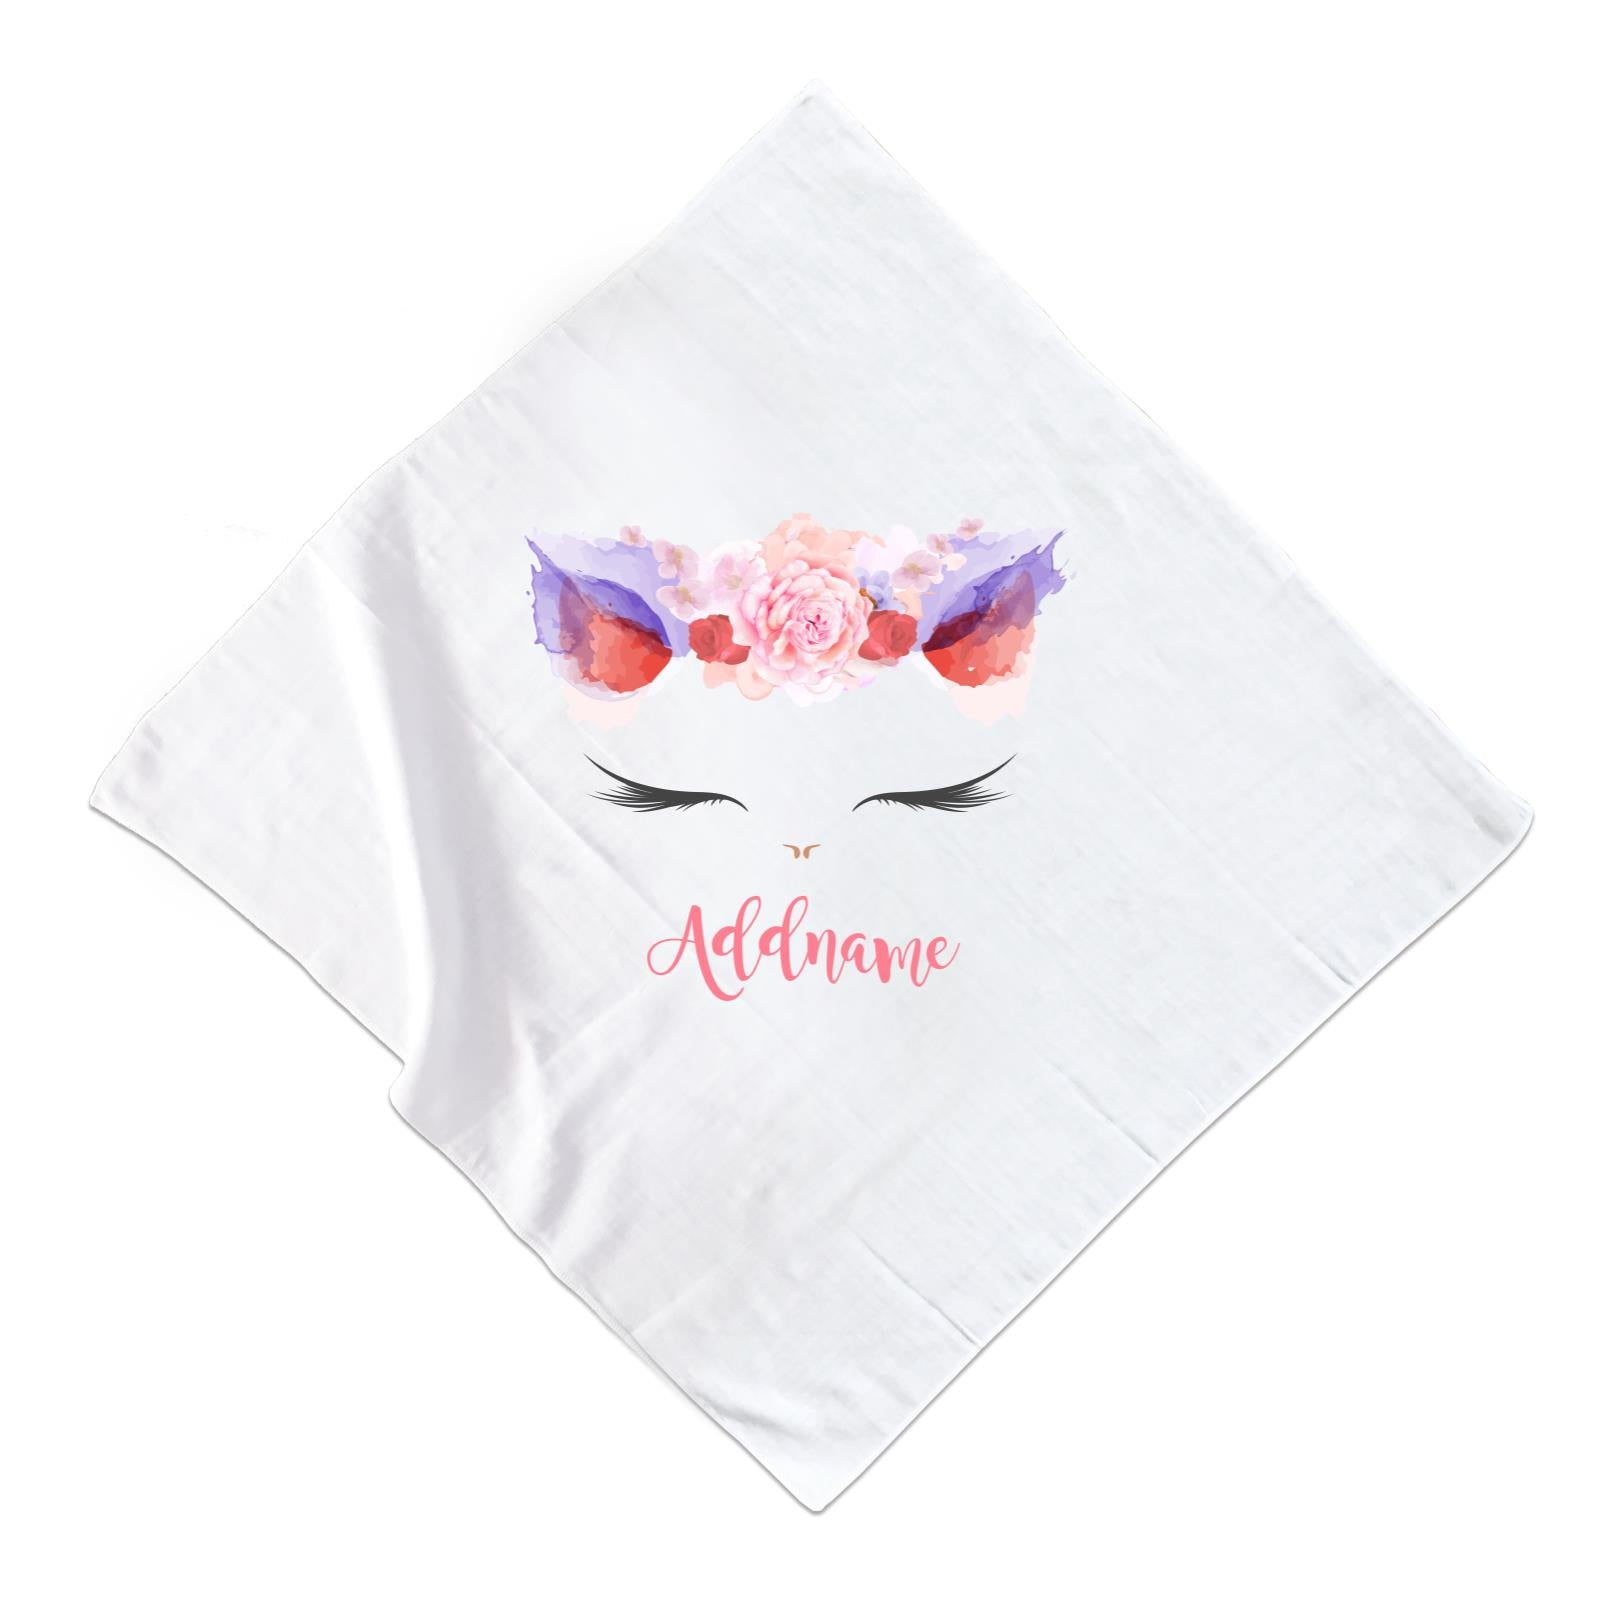 Pink and Red Roses Garland Cat Face Addname Muslin  Square